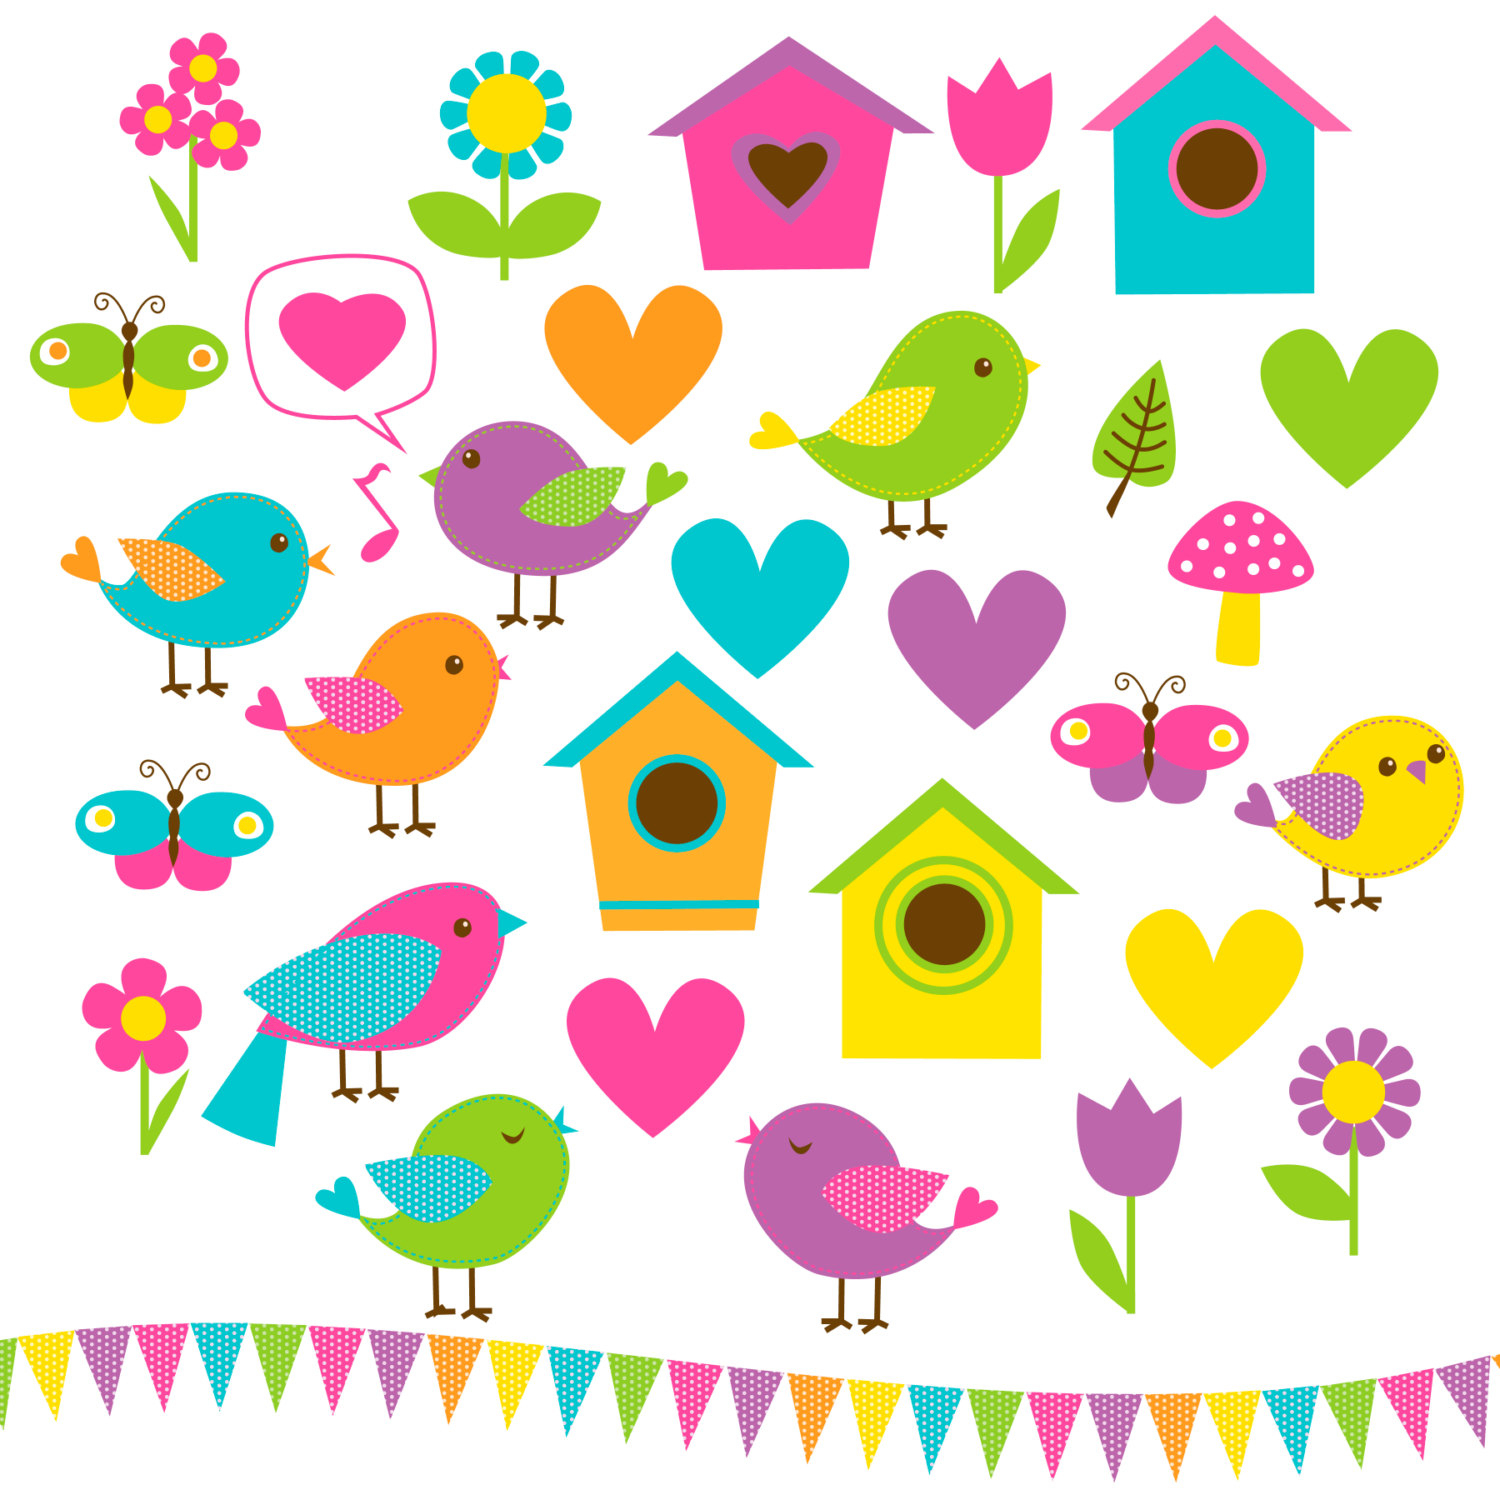 Free Scrapbooking Cliparts, Download Free Clip Art, Free Clip Art On - Free Online Digital Scrapbooking Printable